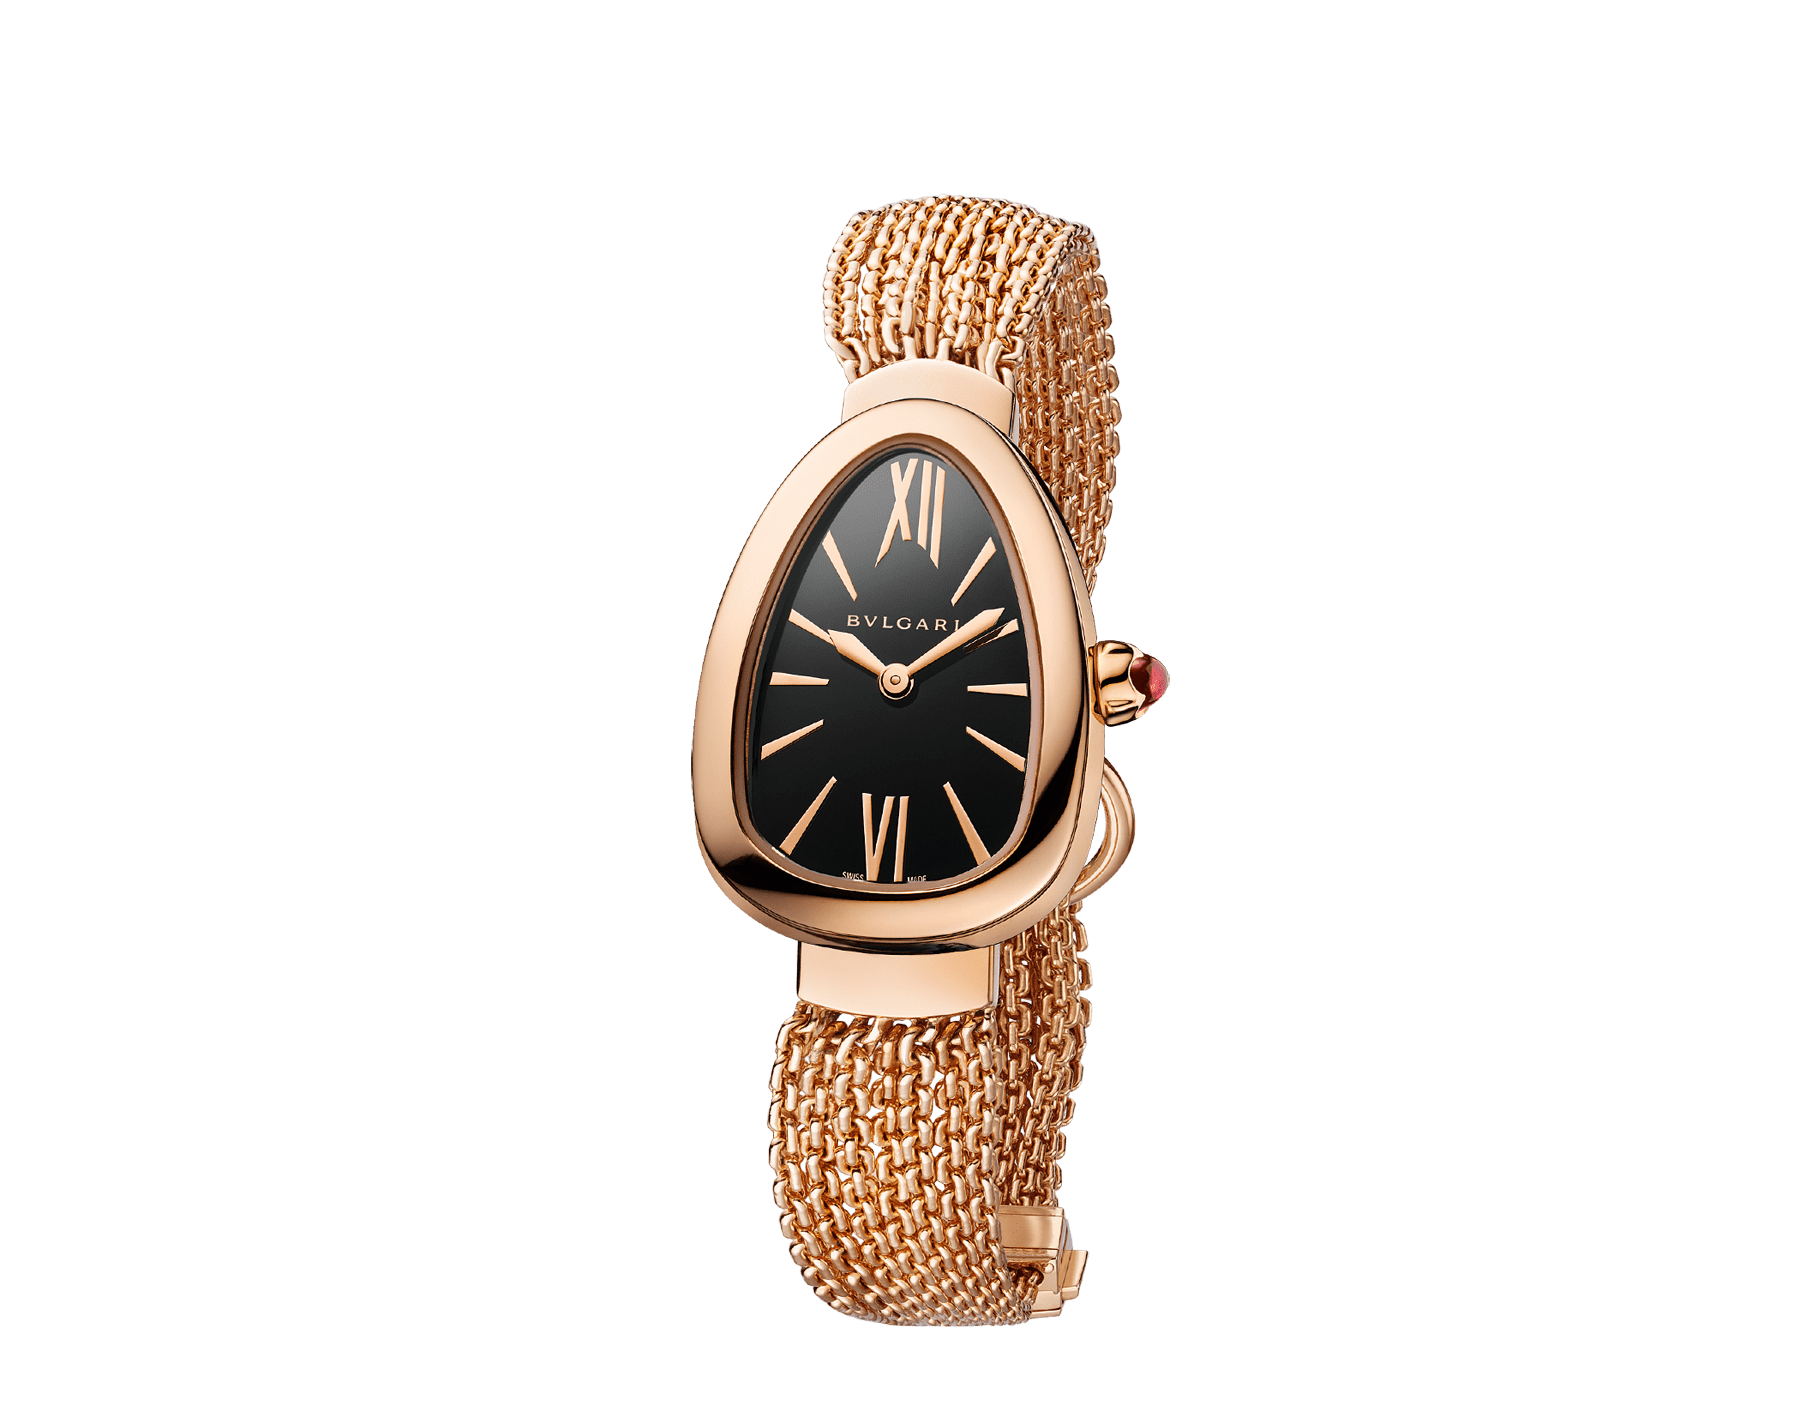 Serpenti watch in 18 kt rose gold case and interchangeable chain bracelet, with black lacquered dial 102728 image 2